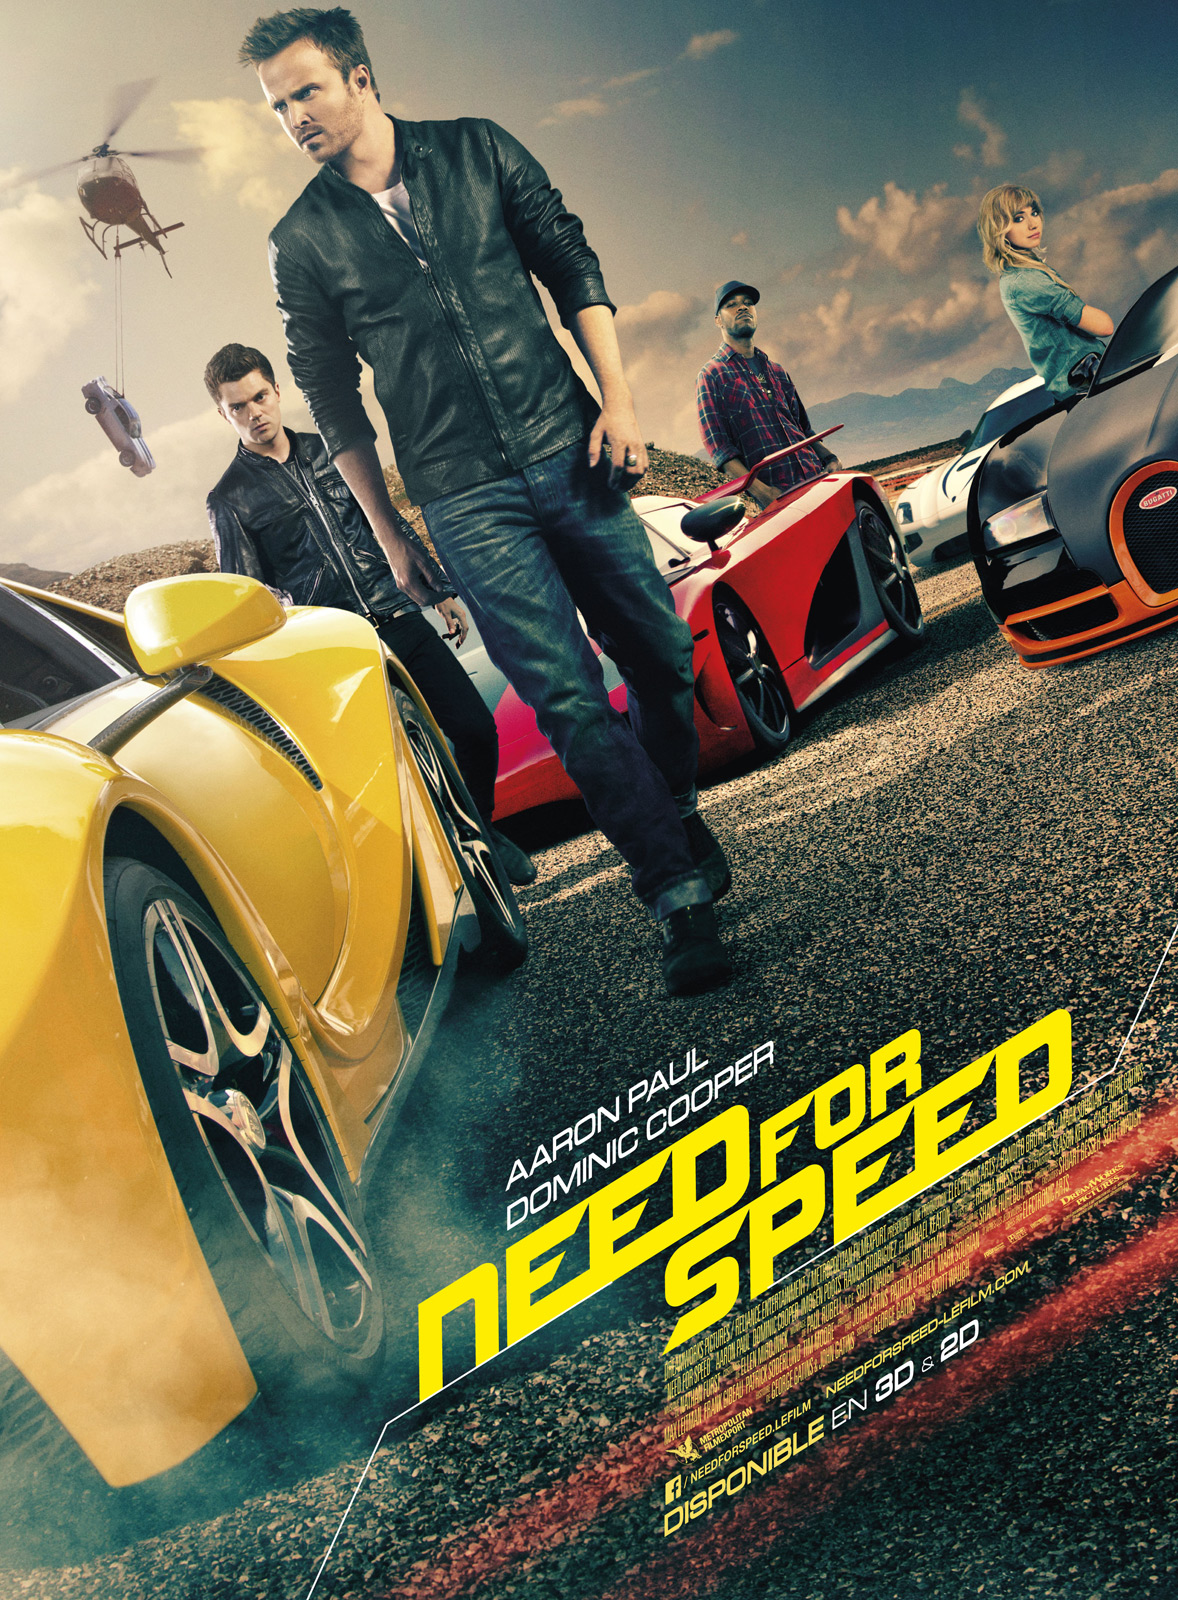 Need for Speed VF 2014